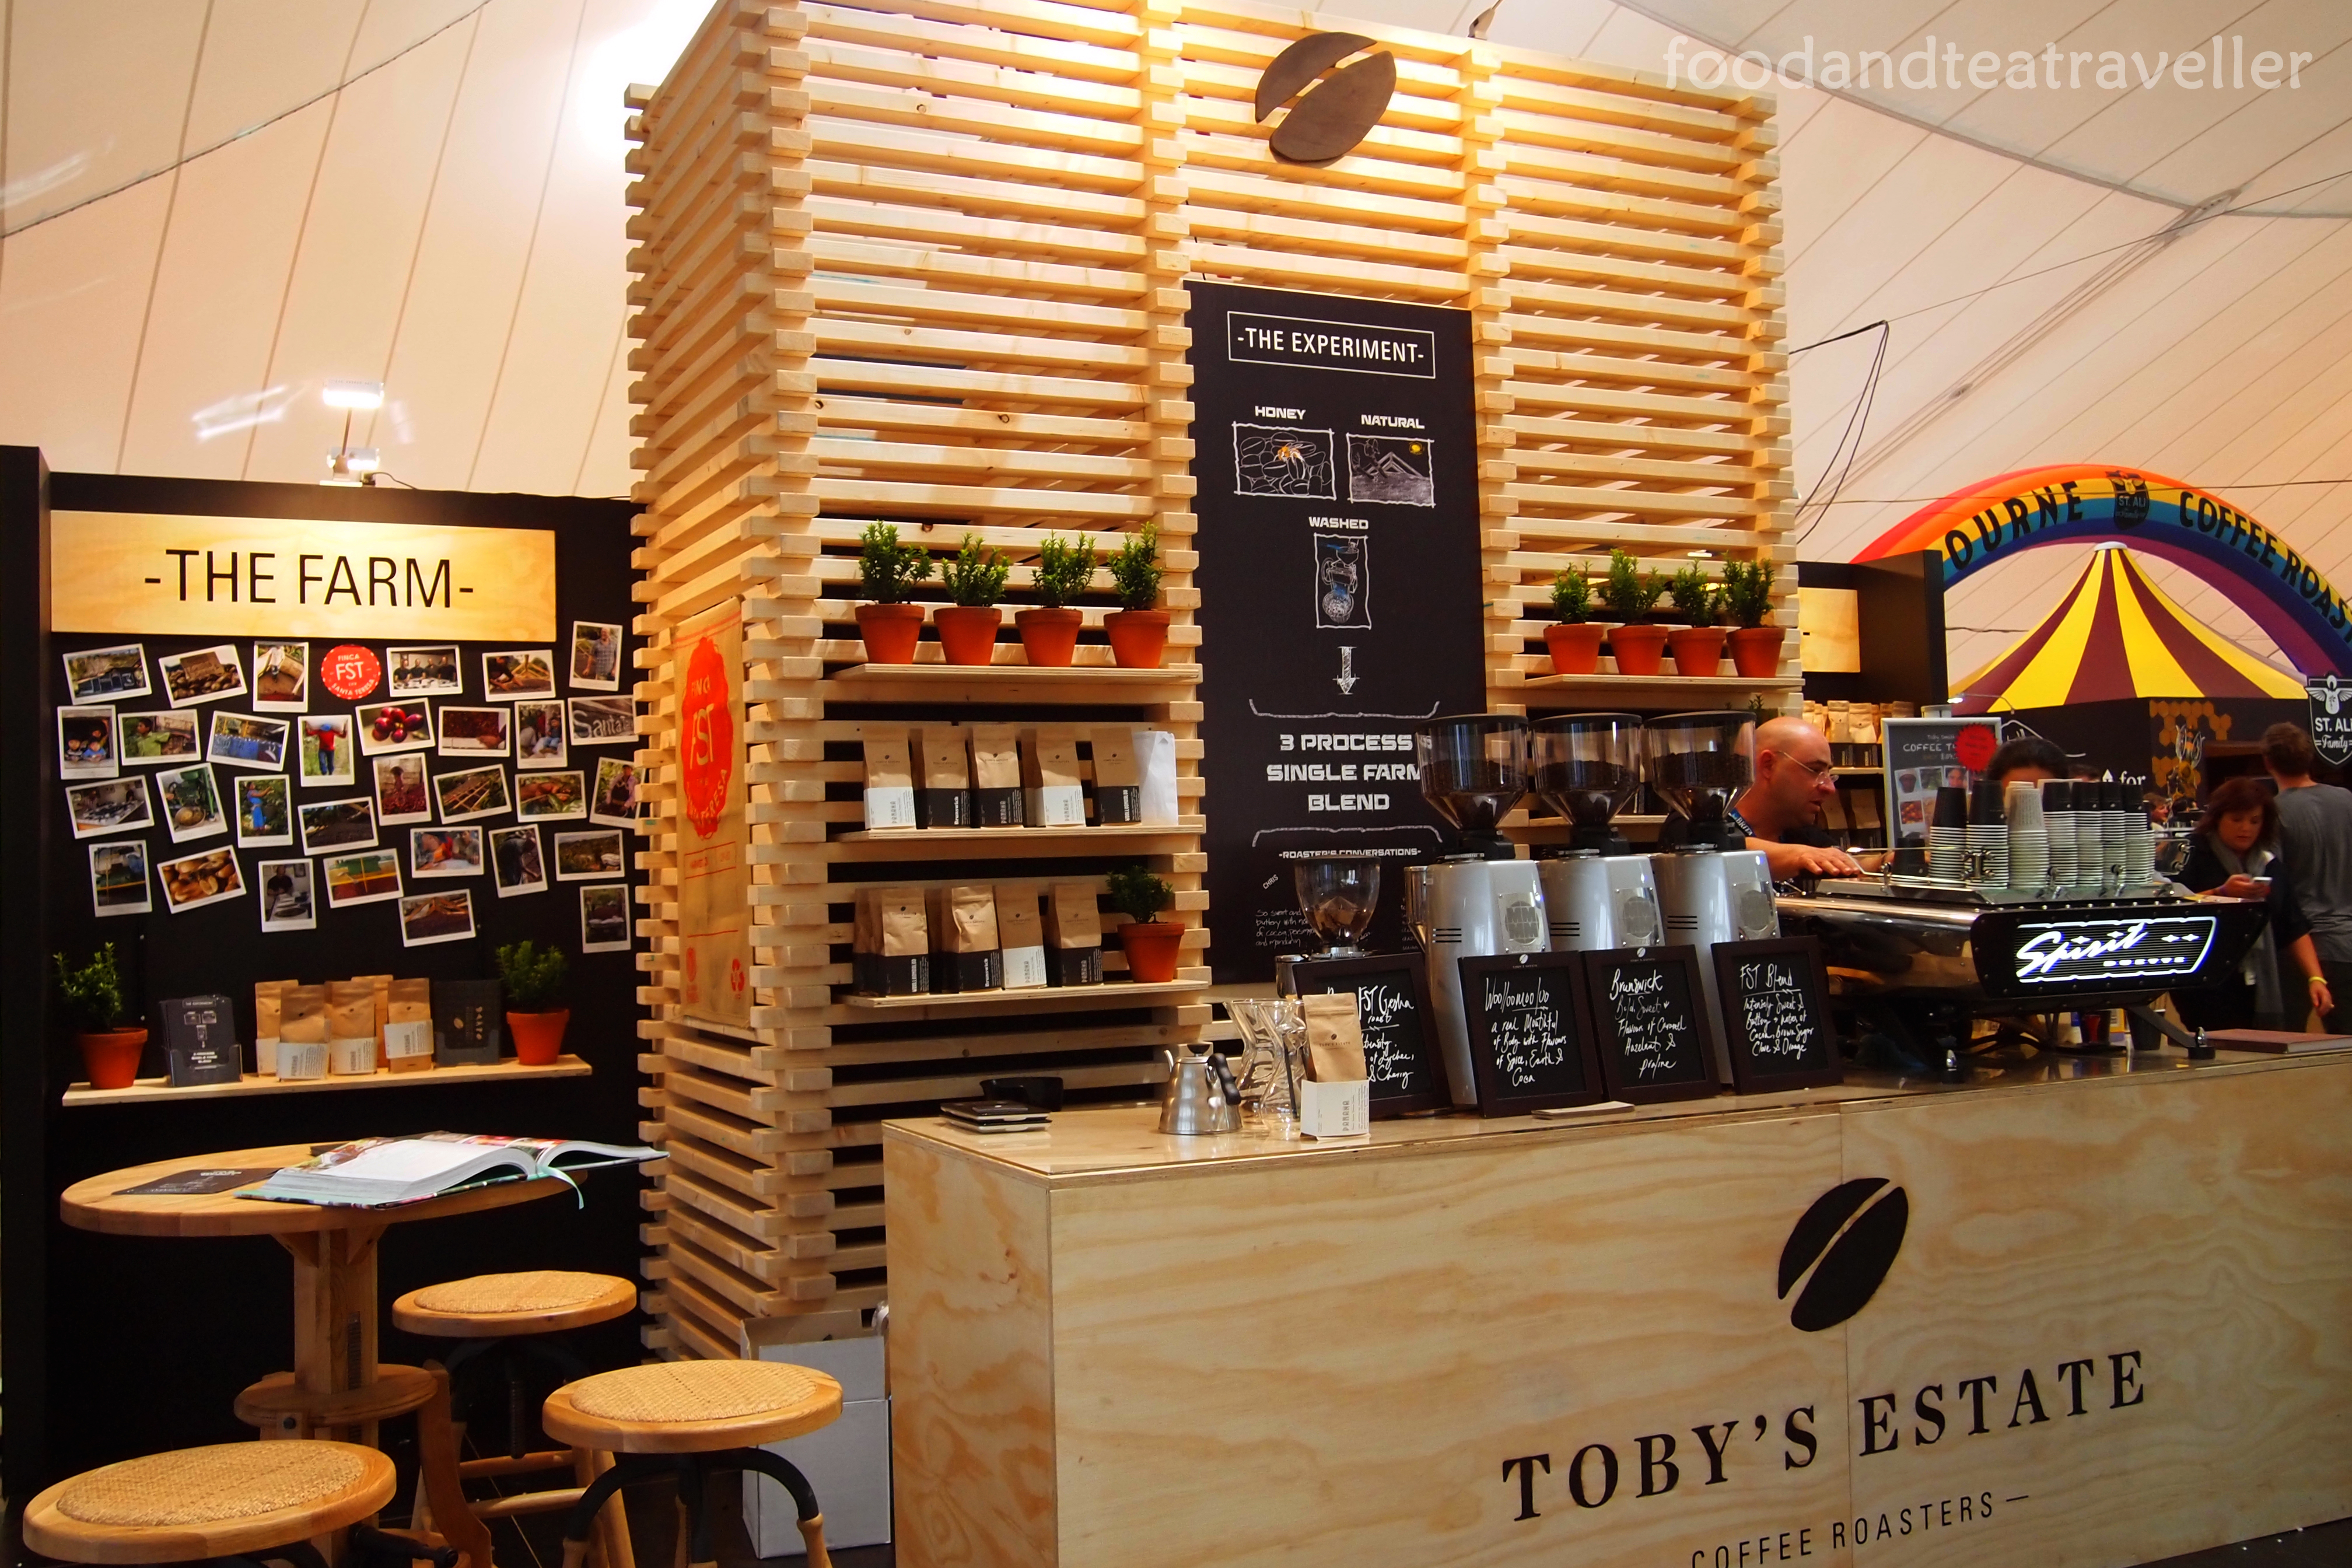 Food Exhibition Stall : Melbourne international coffee expo foodandteatraveller